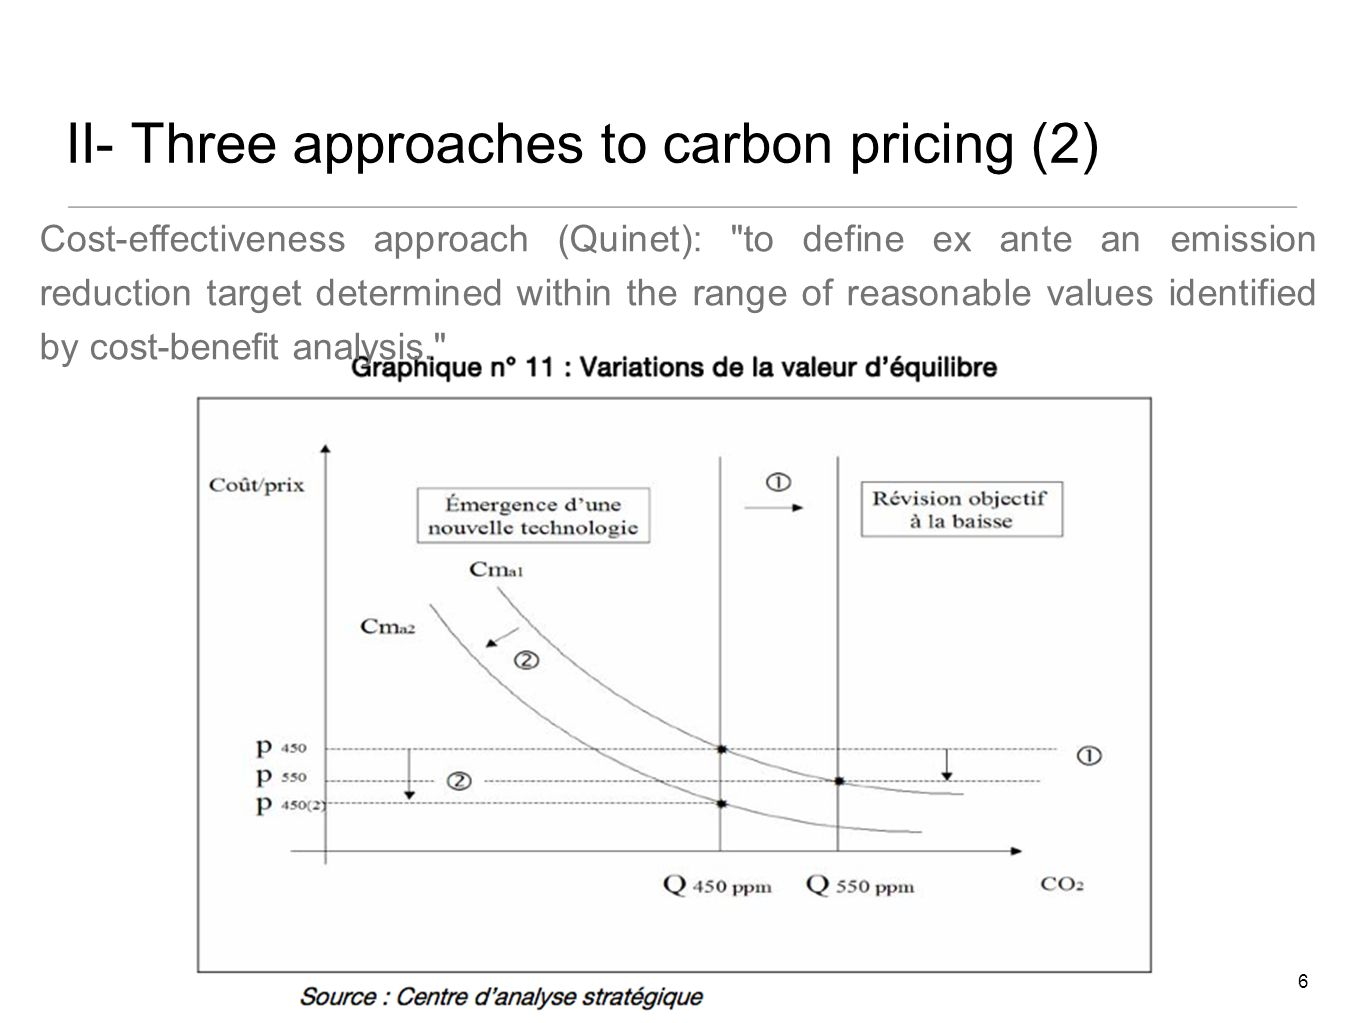 II- Three approaches to carbon pricing (2) 6 Cost-effectiveness approach (Quinet): to define ex ante an emission reduction target determined within the range of reasonable values identified by cost-benefit analysis.